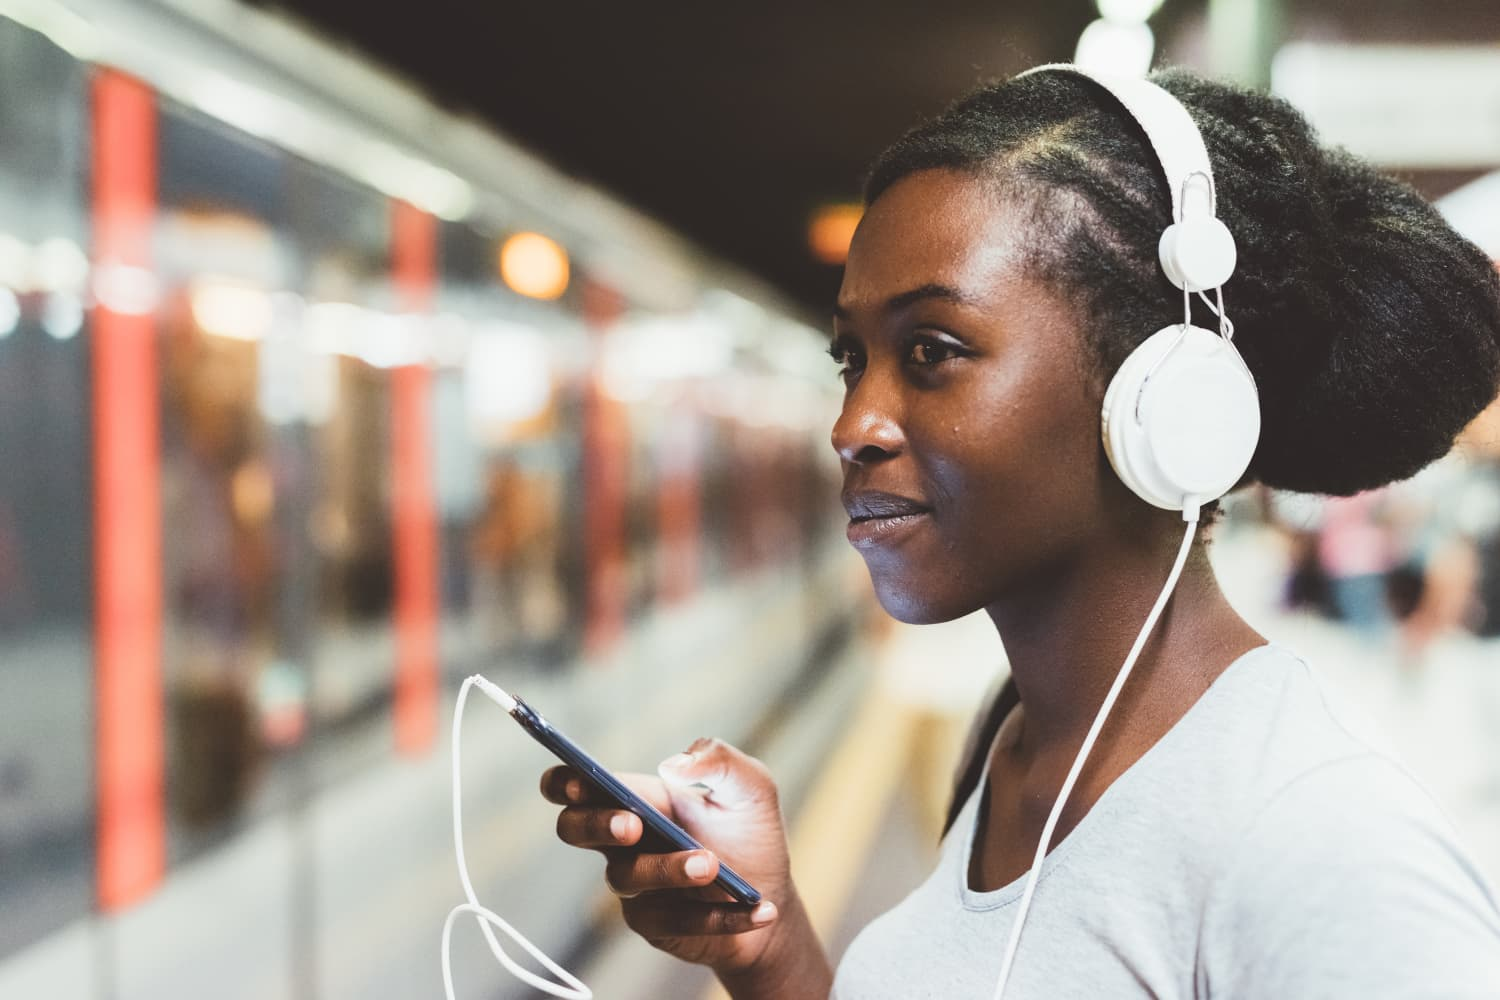 5 Real Estate Podcasts That'll Teach You the Ins and Outs of Buying a House